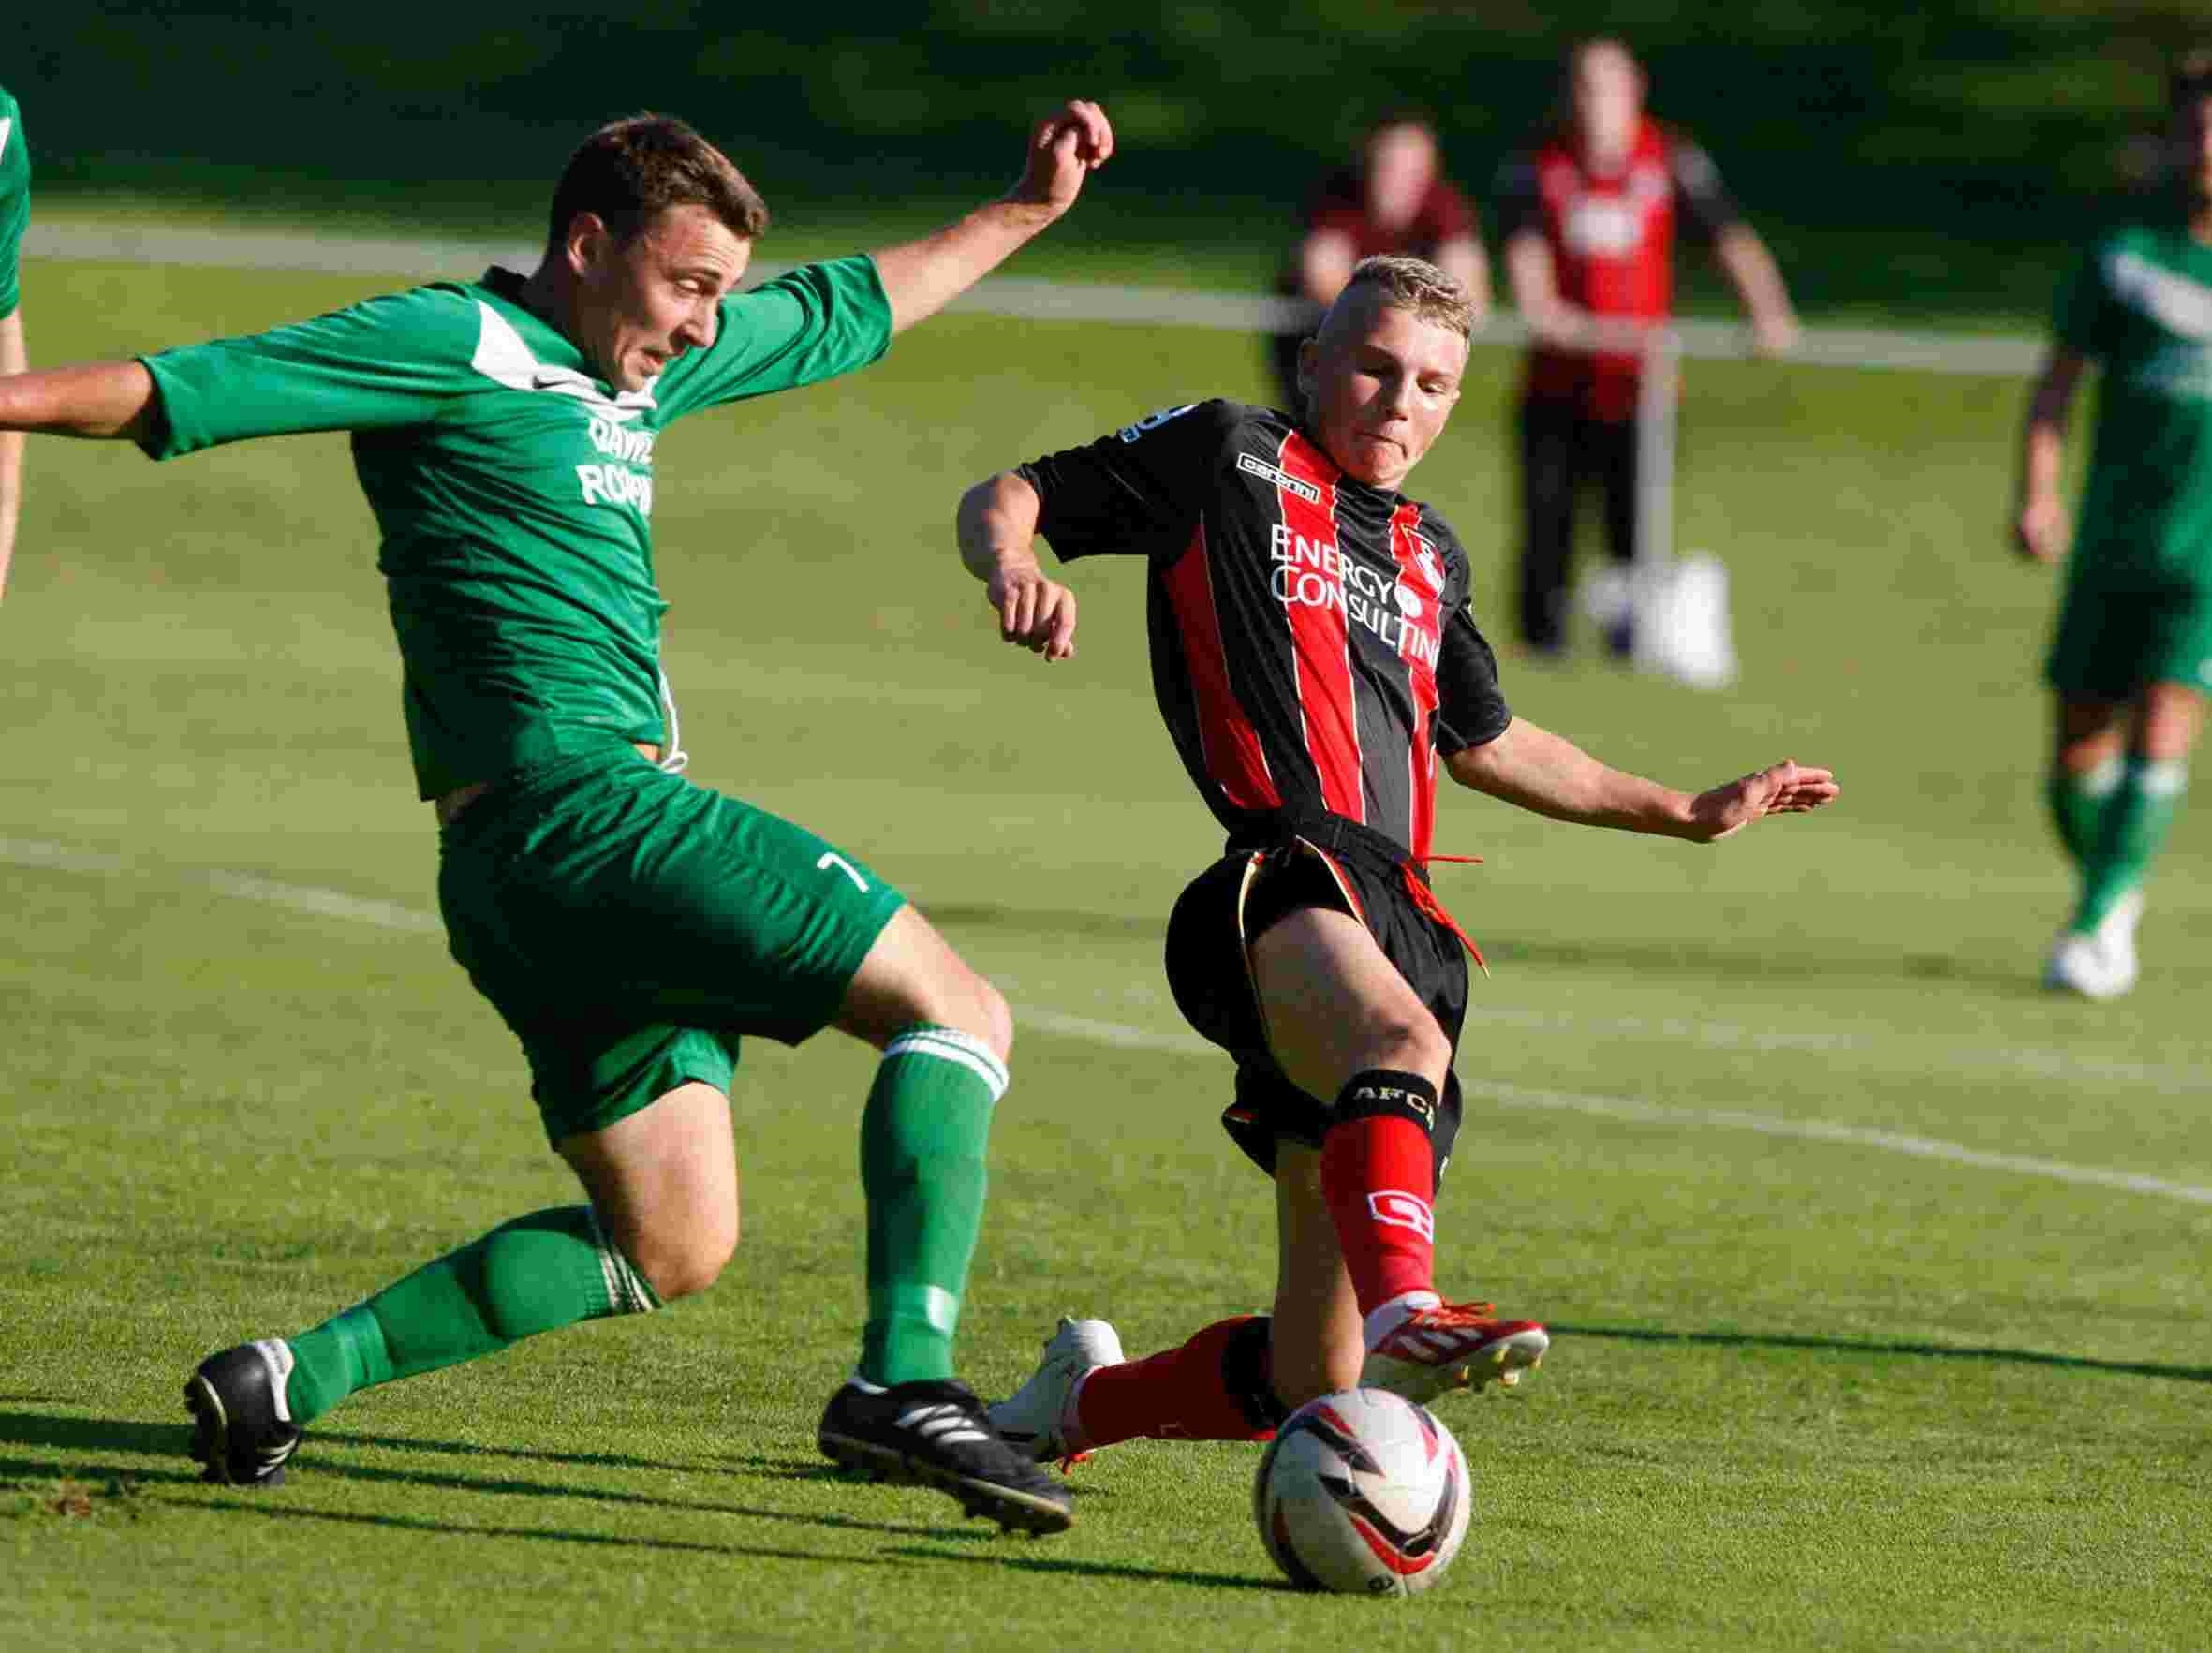 PERMANENT MOVE: Cherries' Ben Whitfield